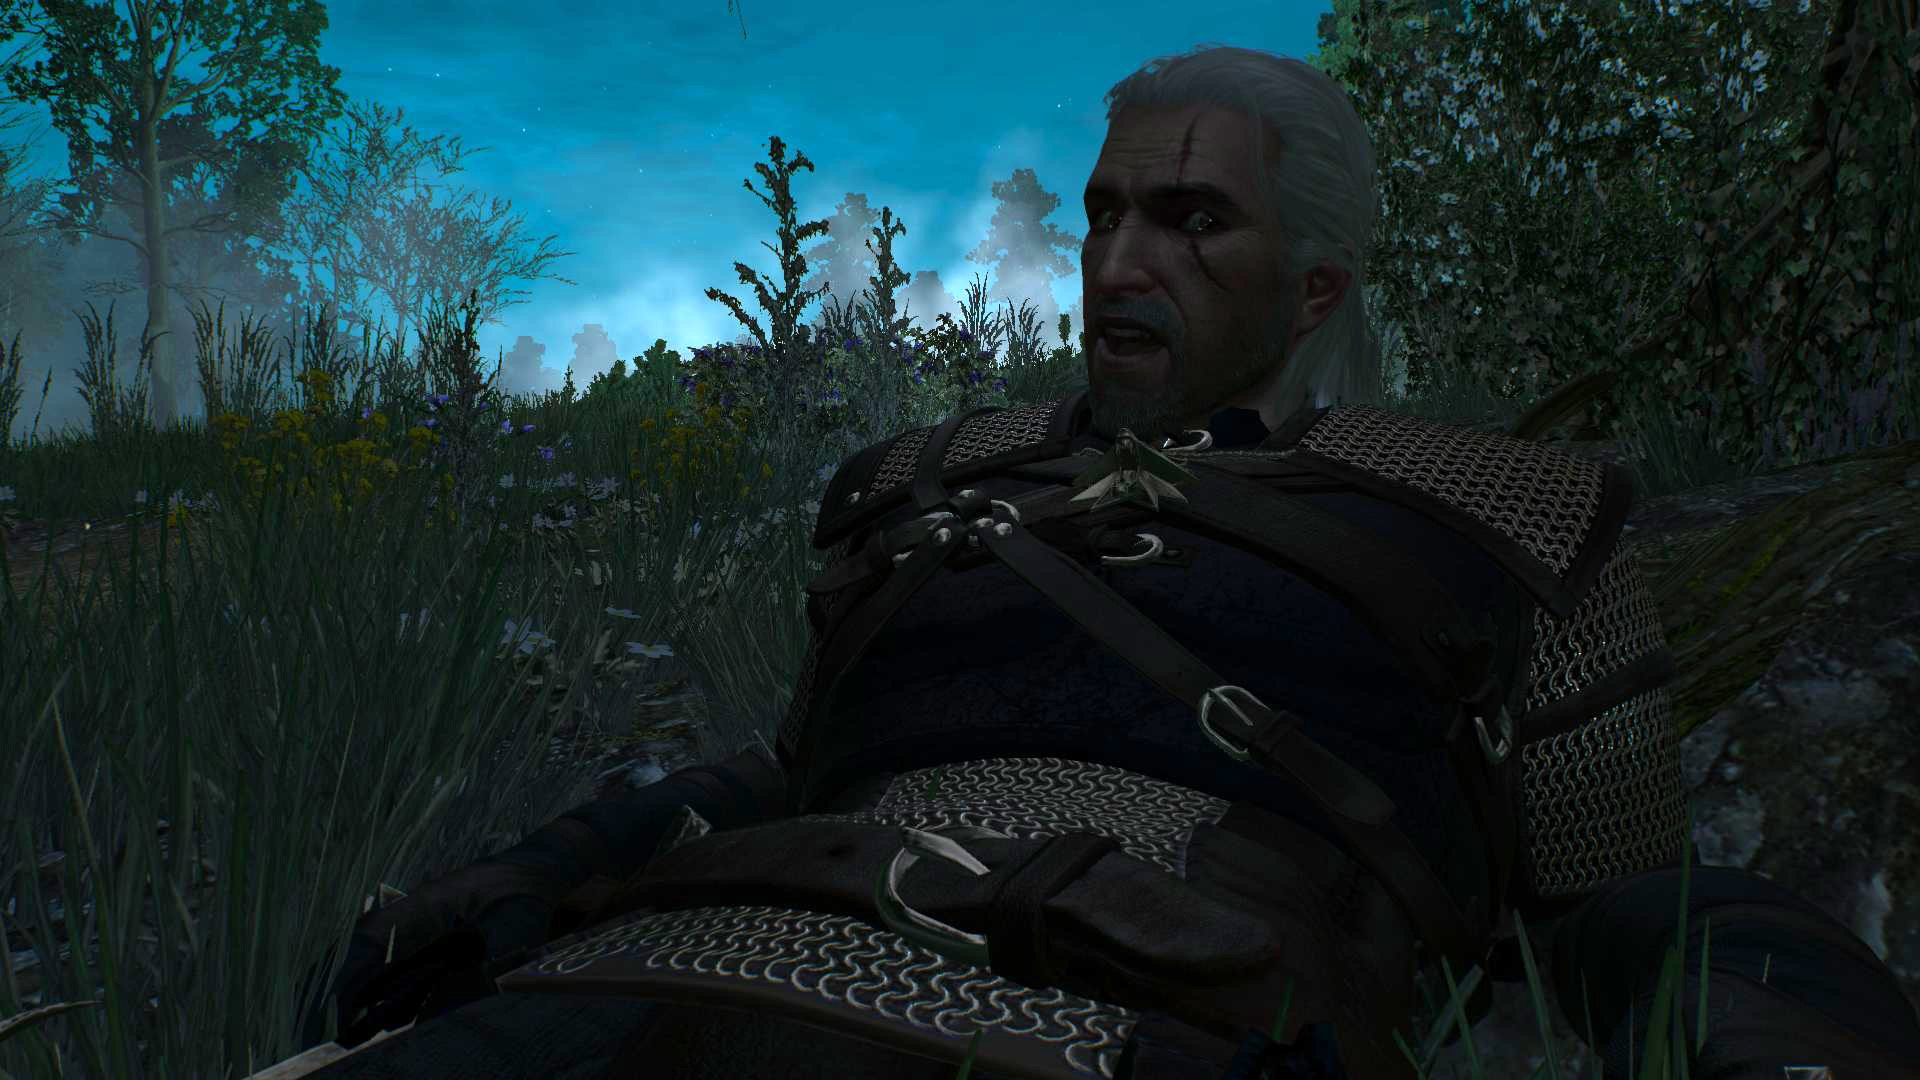 witcher3 2019-10-06 20-54-17-28.jpg - Witcher 3: Wild Hunt, the